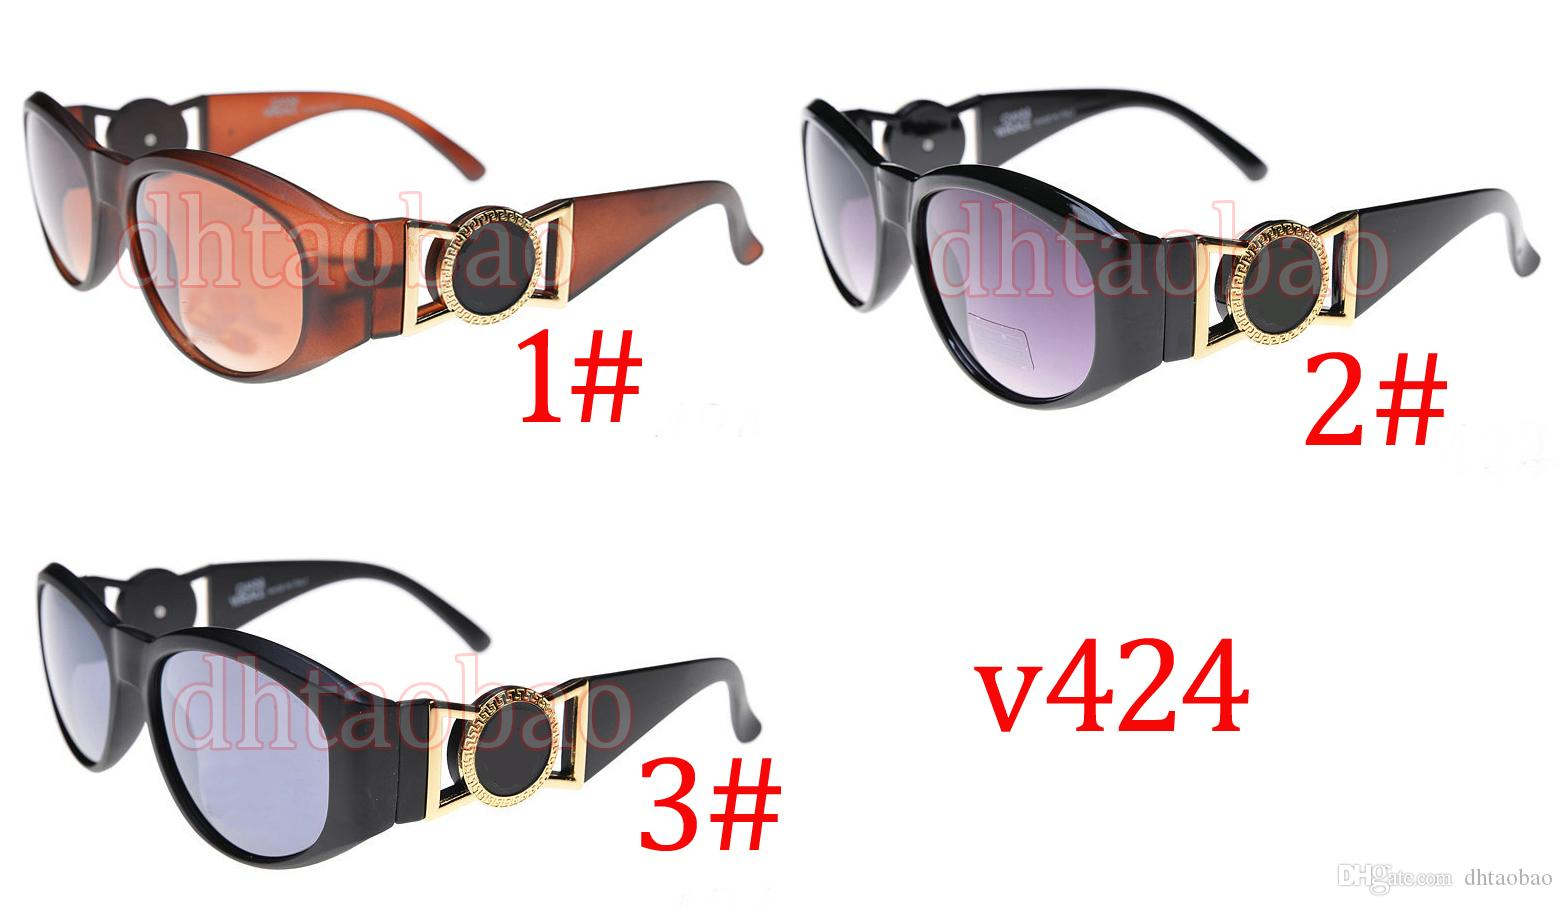 0a54c3cd2a9 Moq Unisex Sun Glasses Fashion Sunglasses Vintage Frog Glasses Black Wide  Frames Over Sized Lens Frame Eye Wear Shipping Fashion Sunglasses Goggle  Online ...